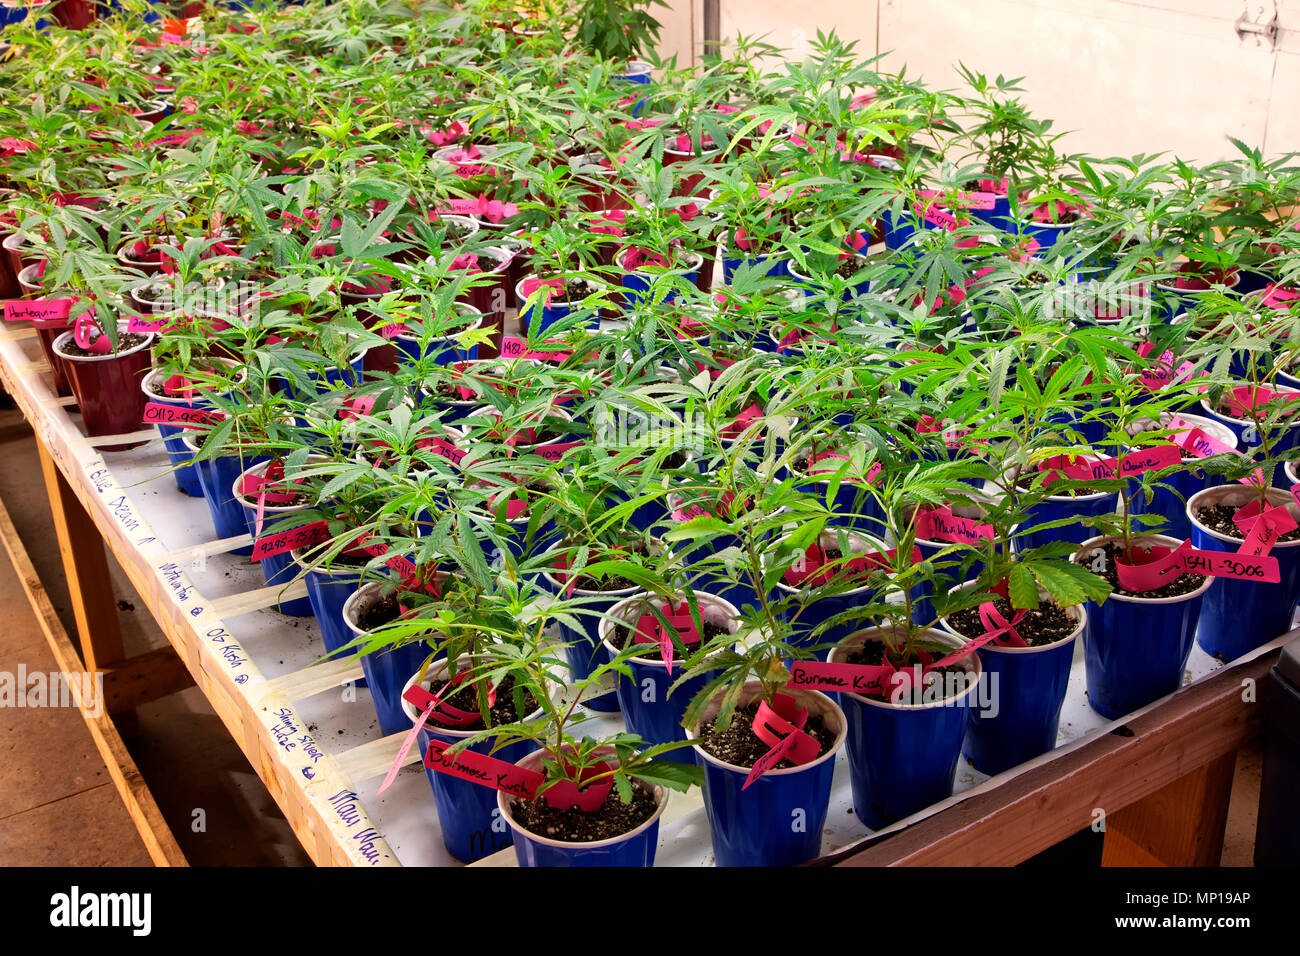 Young 'Cannabis sativa' plants growing in containers, artificial lighting, nursery, weed farm, Washington State. - Stock Image